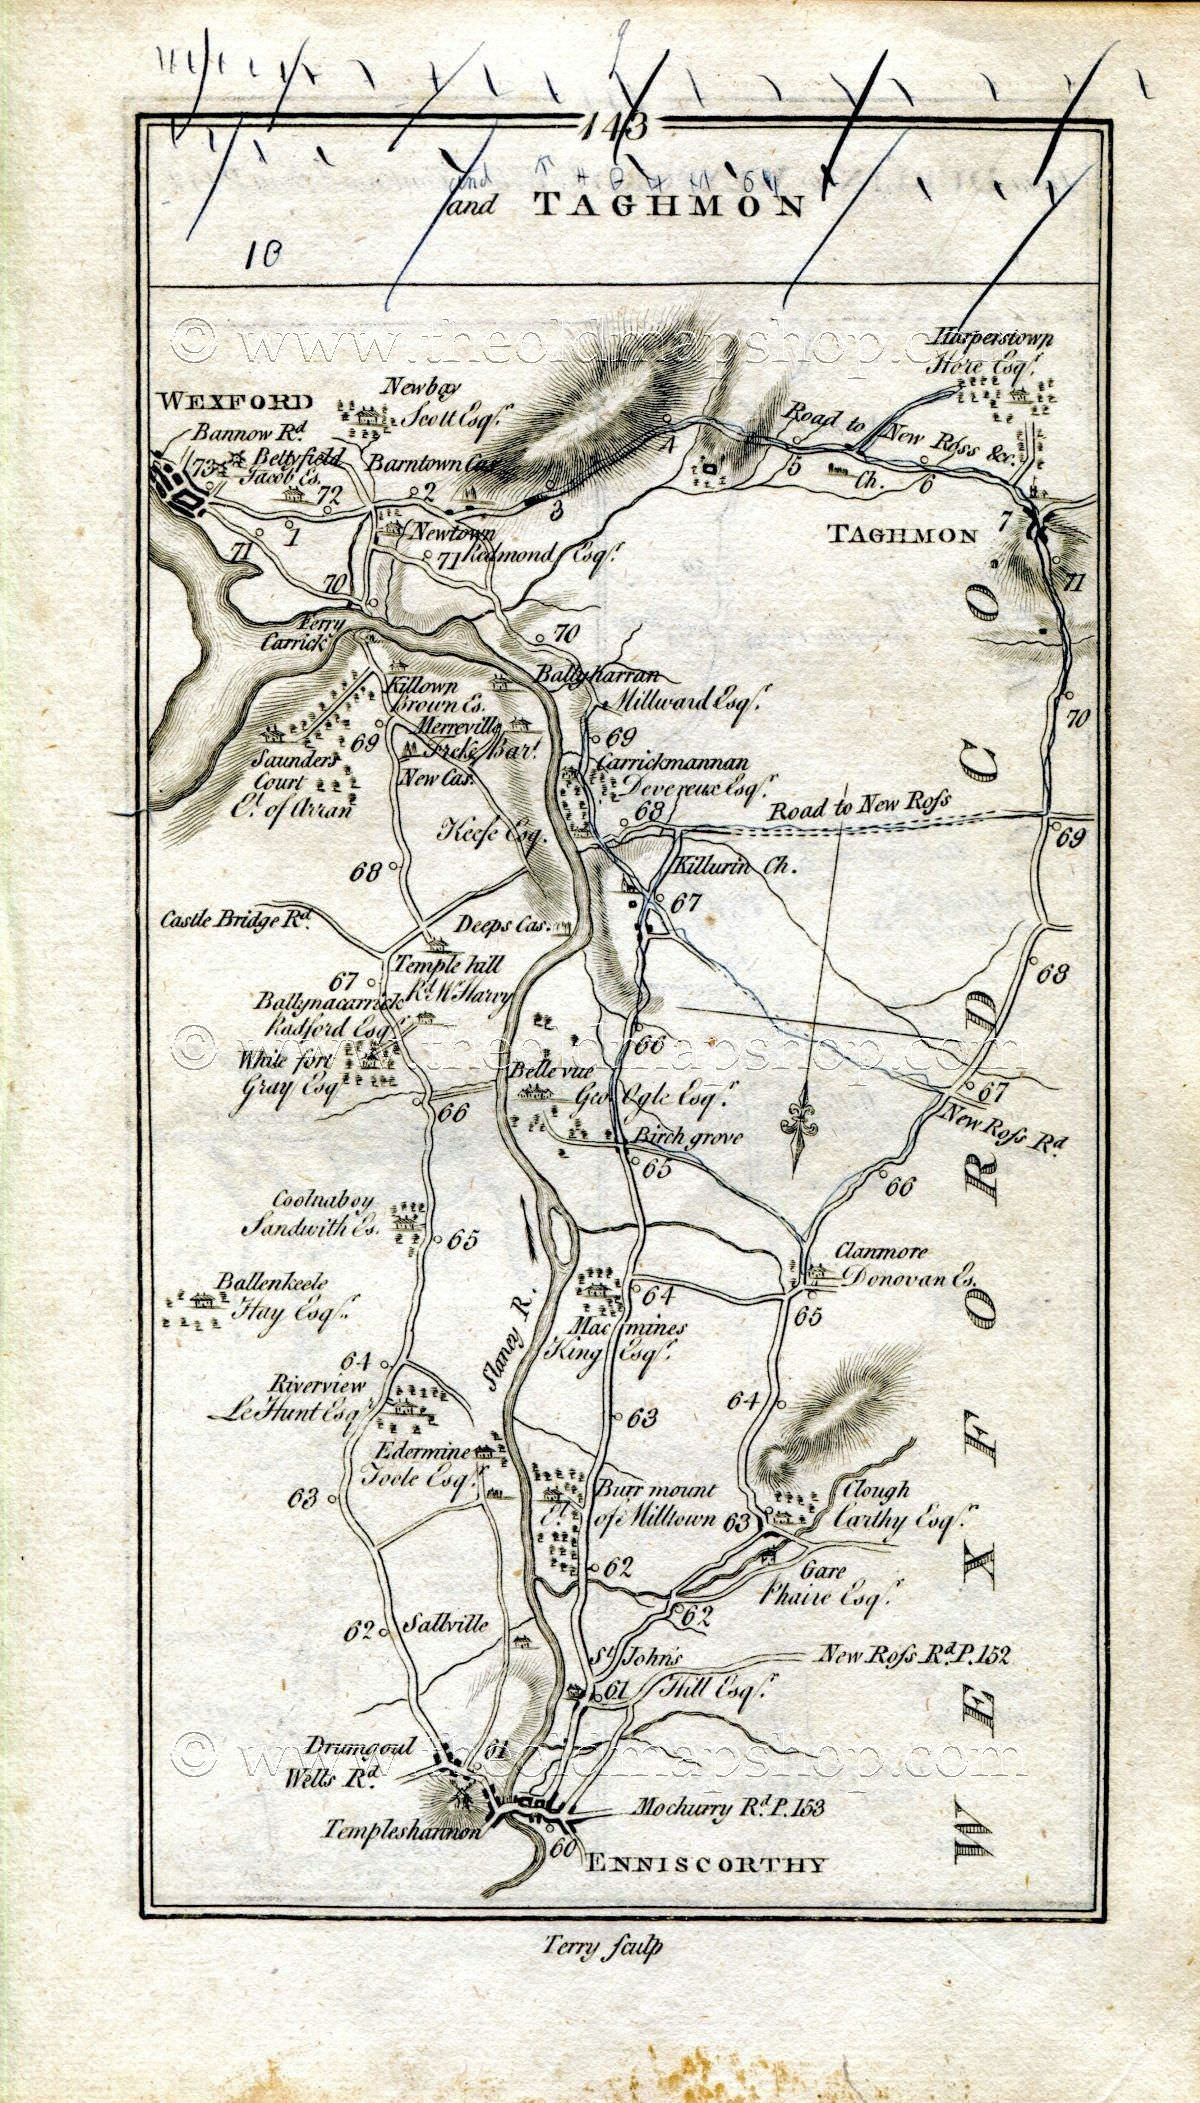 Map Of Ireland Roads.1778 Taylor Skinner Antique Ireland Road Map 143 144 Enniscorthy